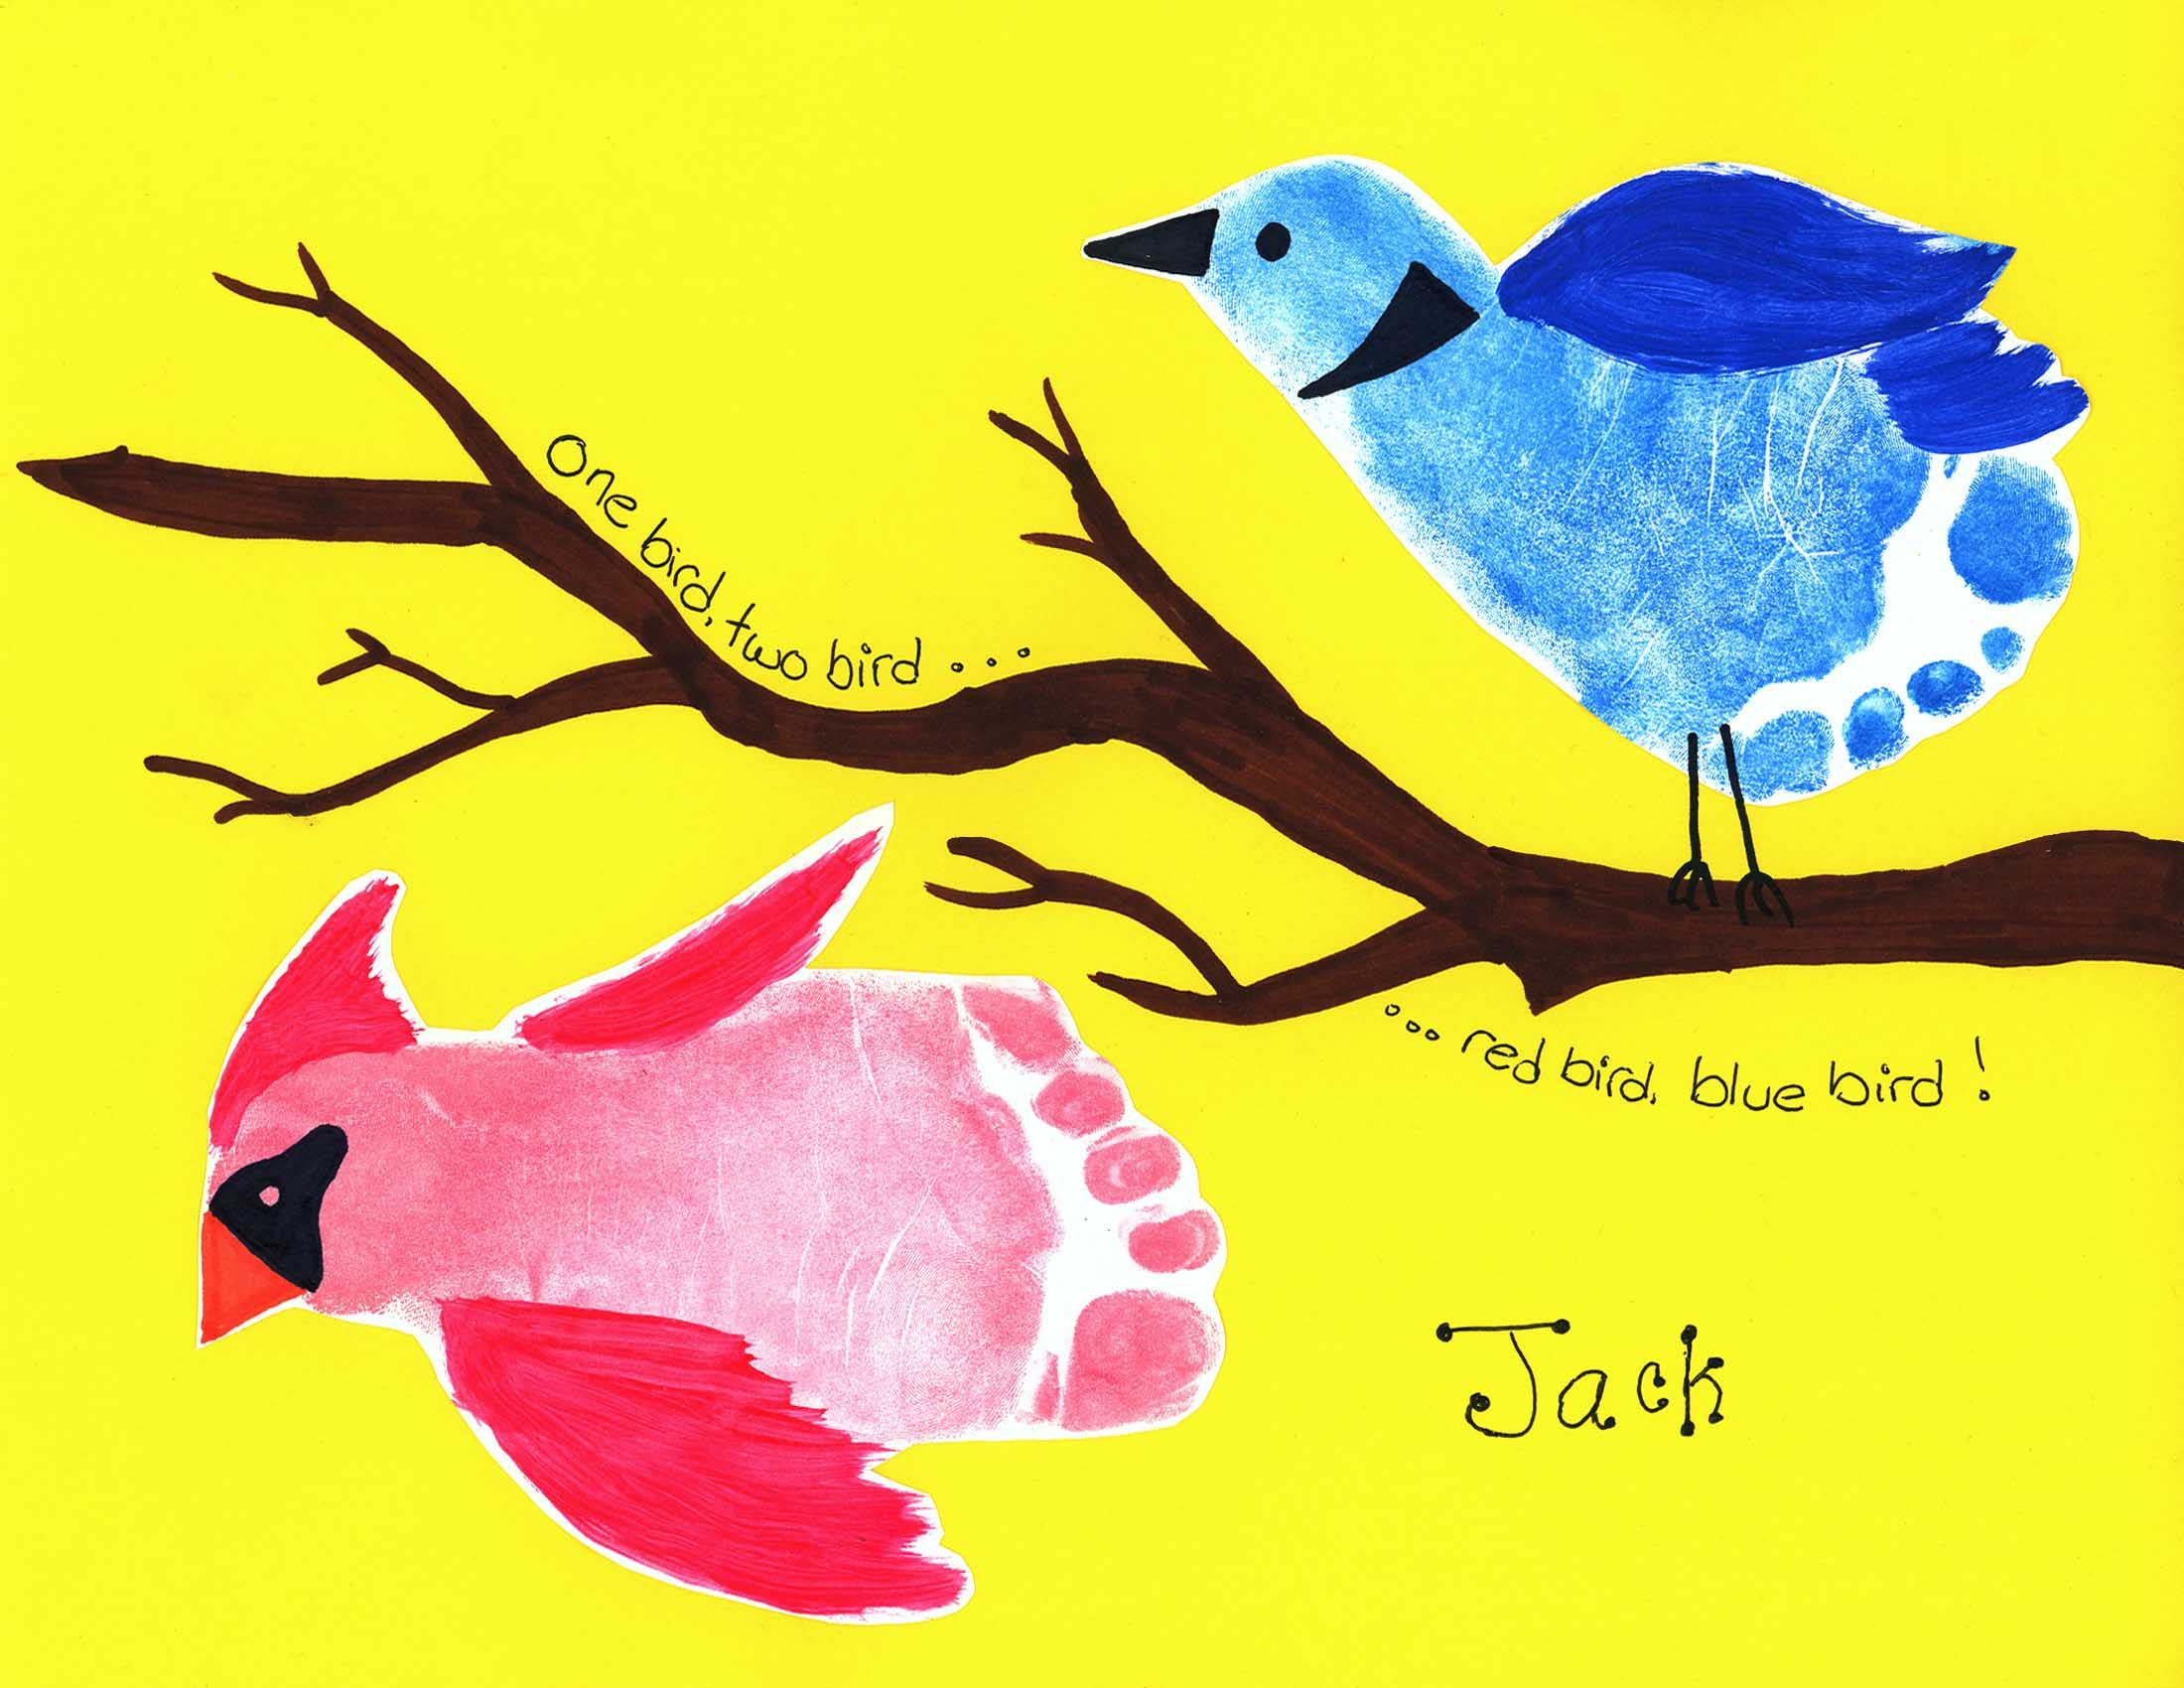 footprint birds great art and craft kits for children http